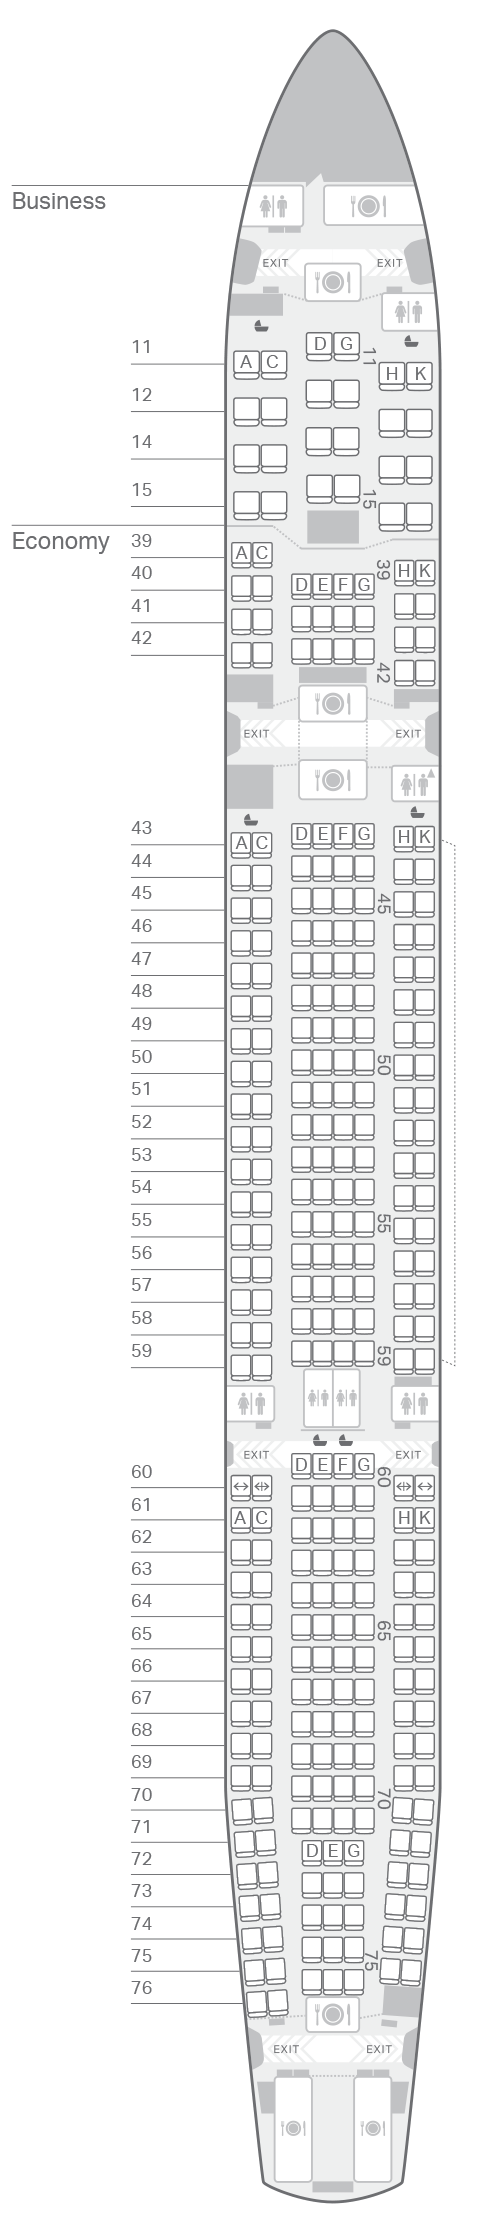 A300 300 33p Seating Plan